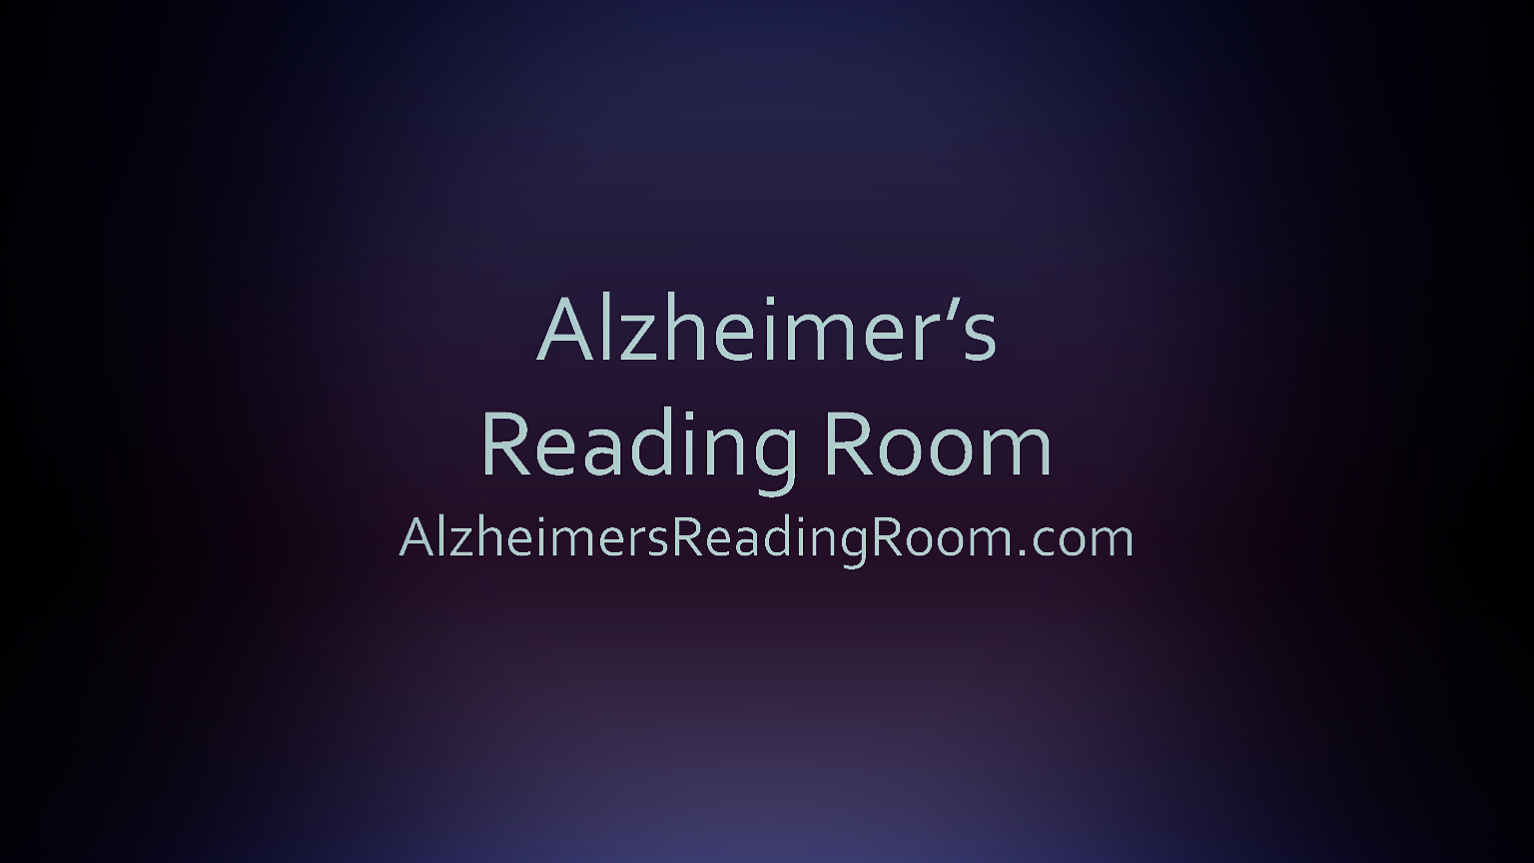 Alzheiemr's Reading Room